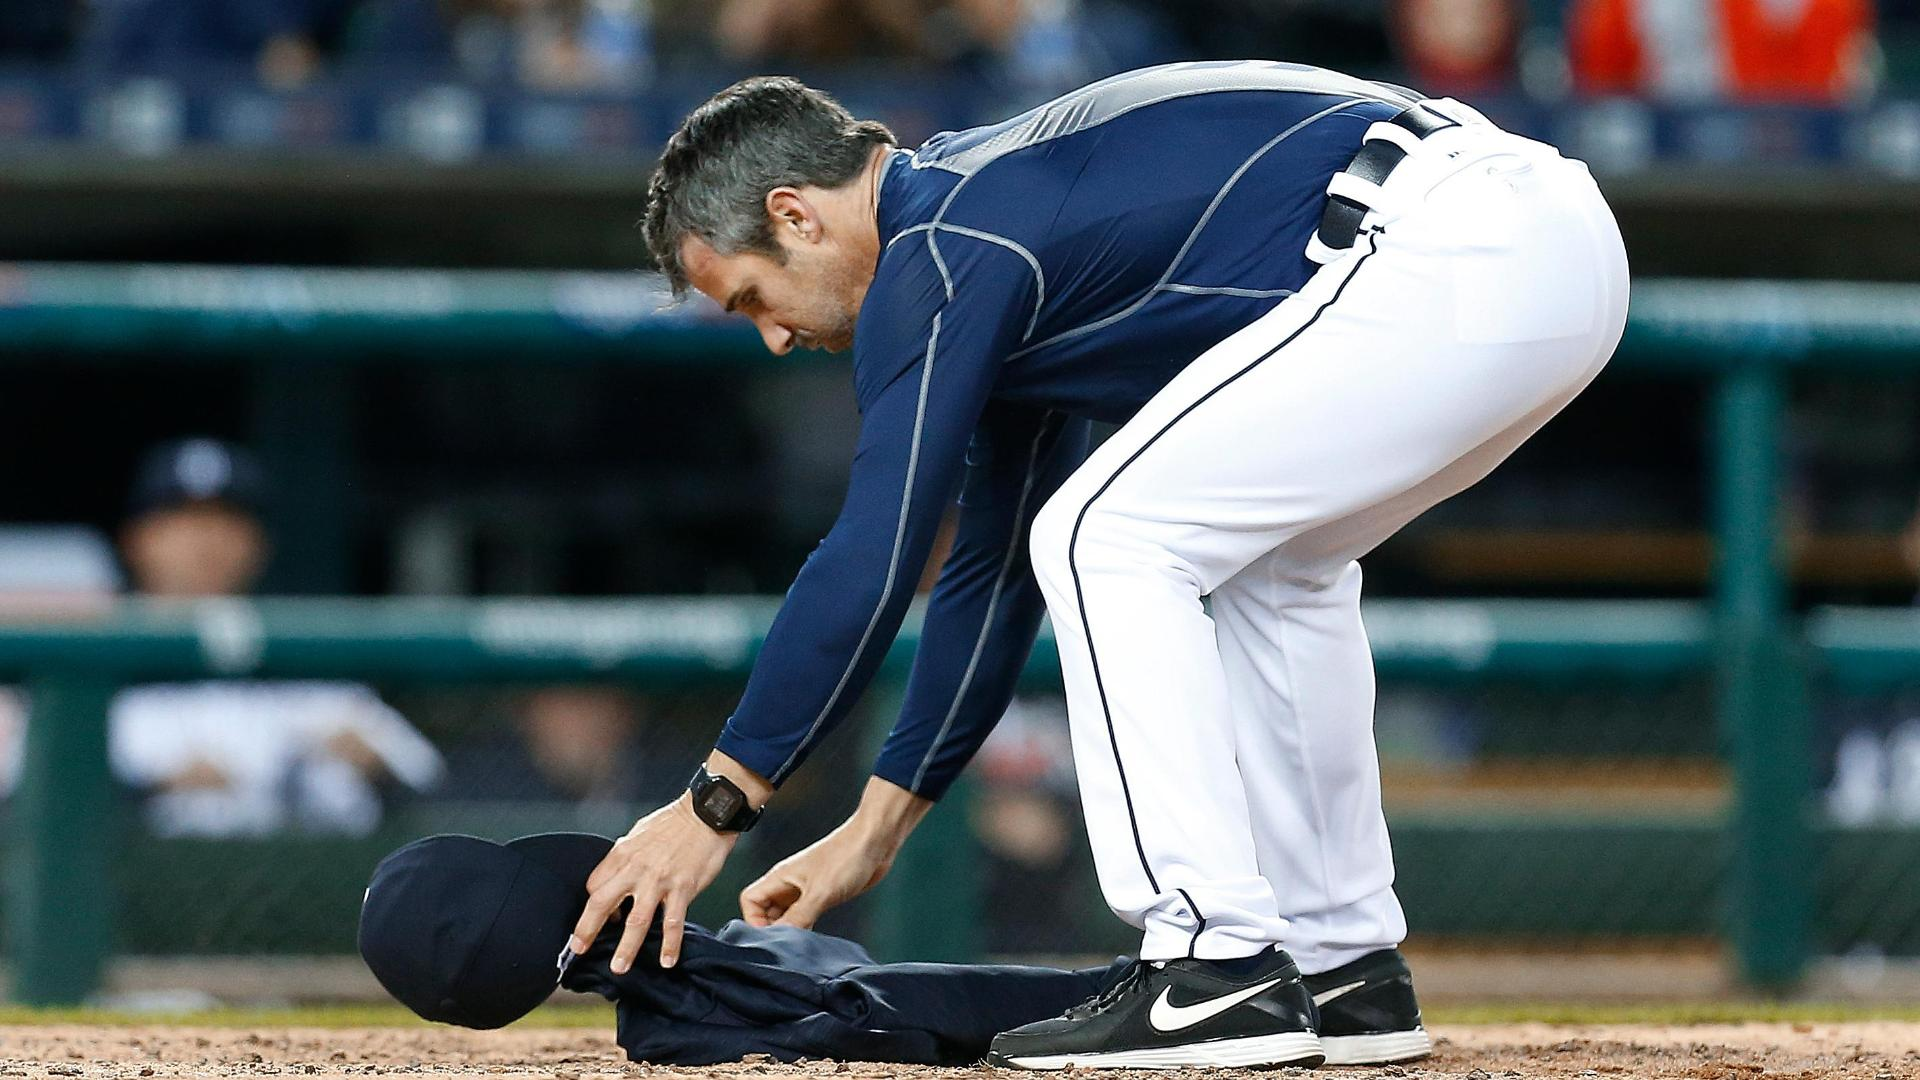 Ausmus ejected, leaves sweatshirt at home plate